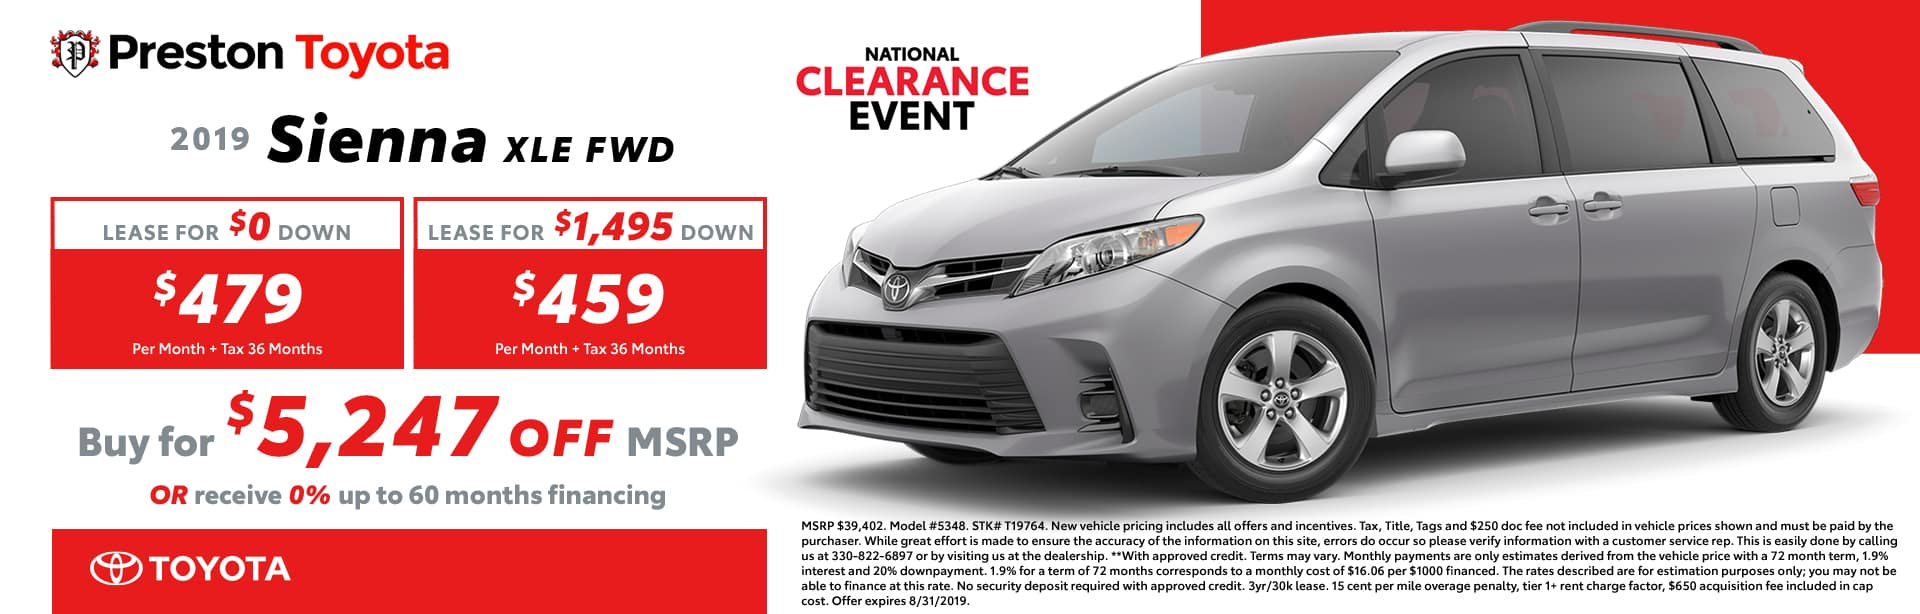 August special on the 2019 Sienna